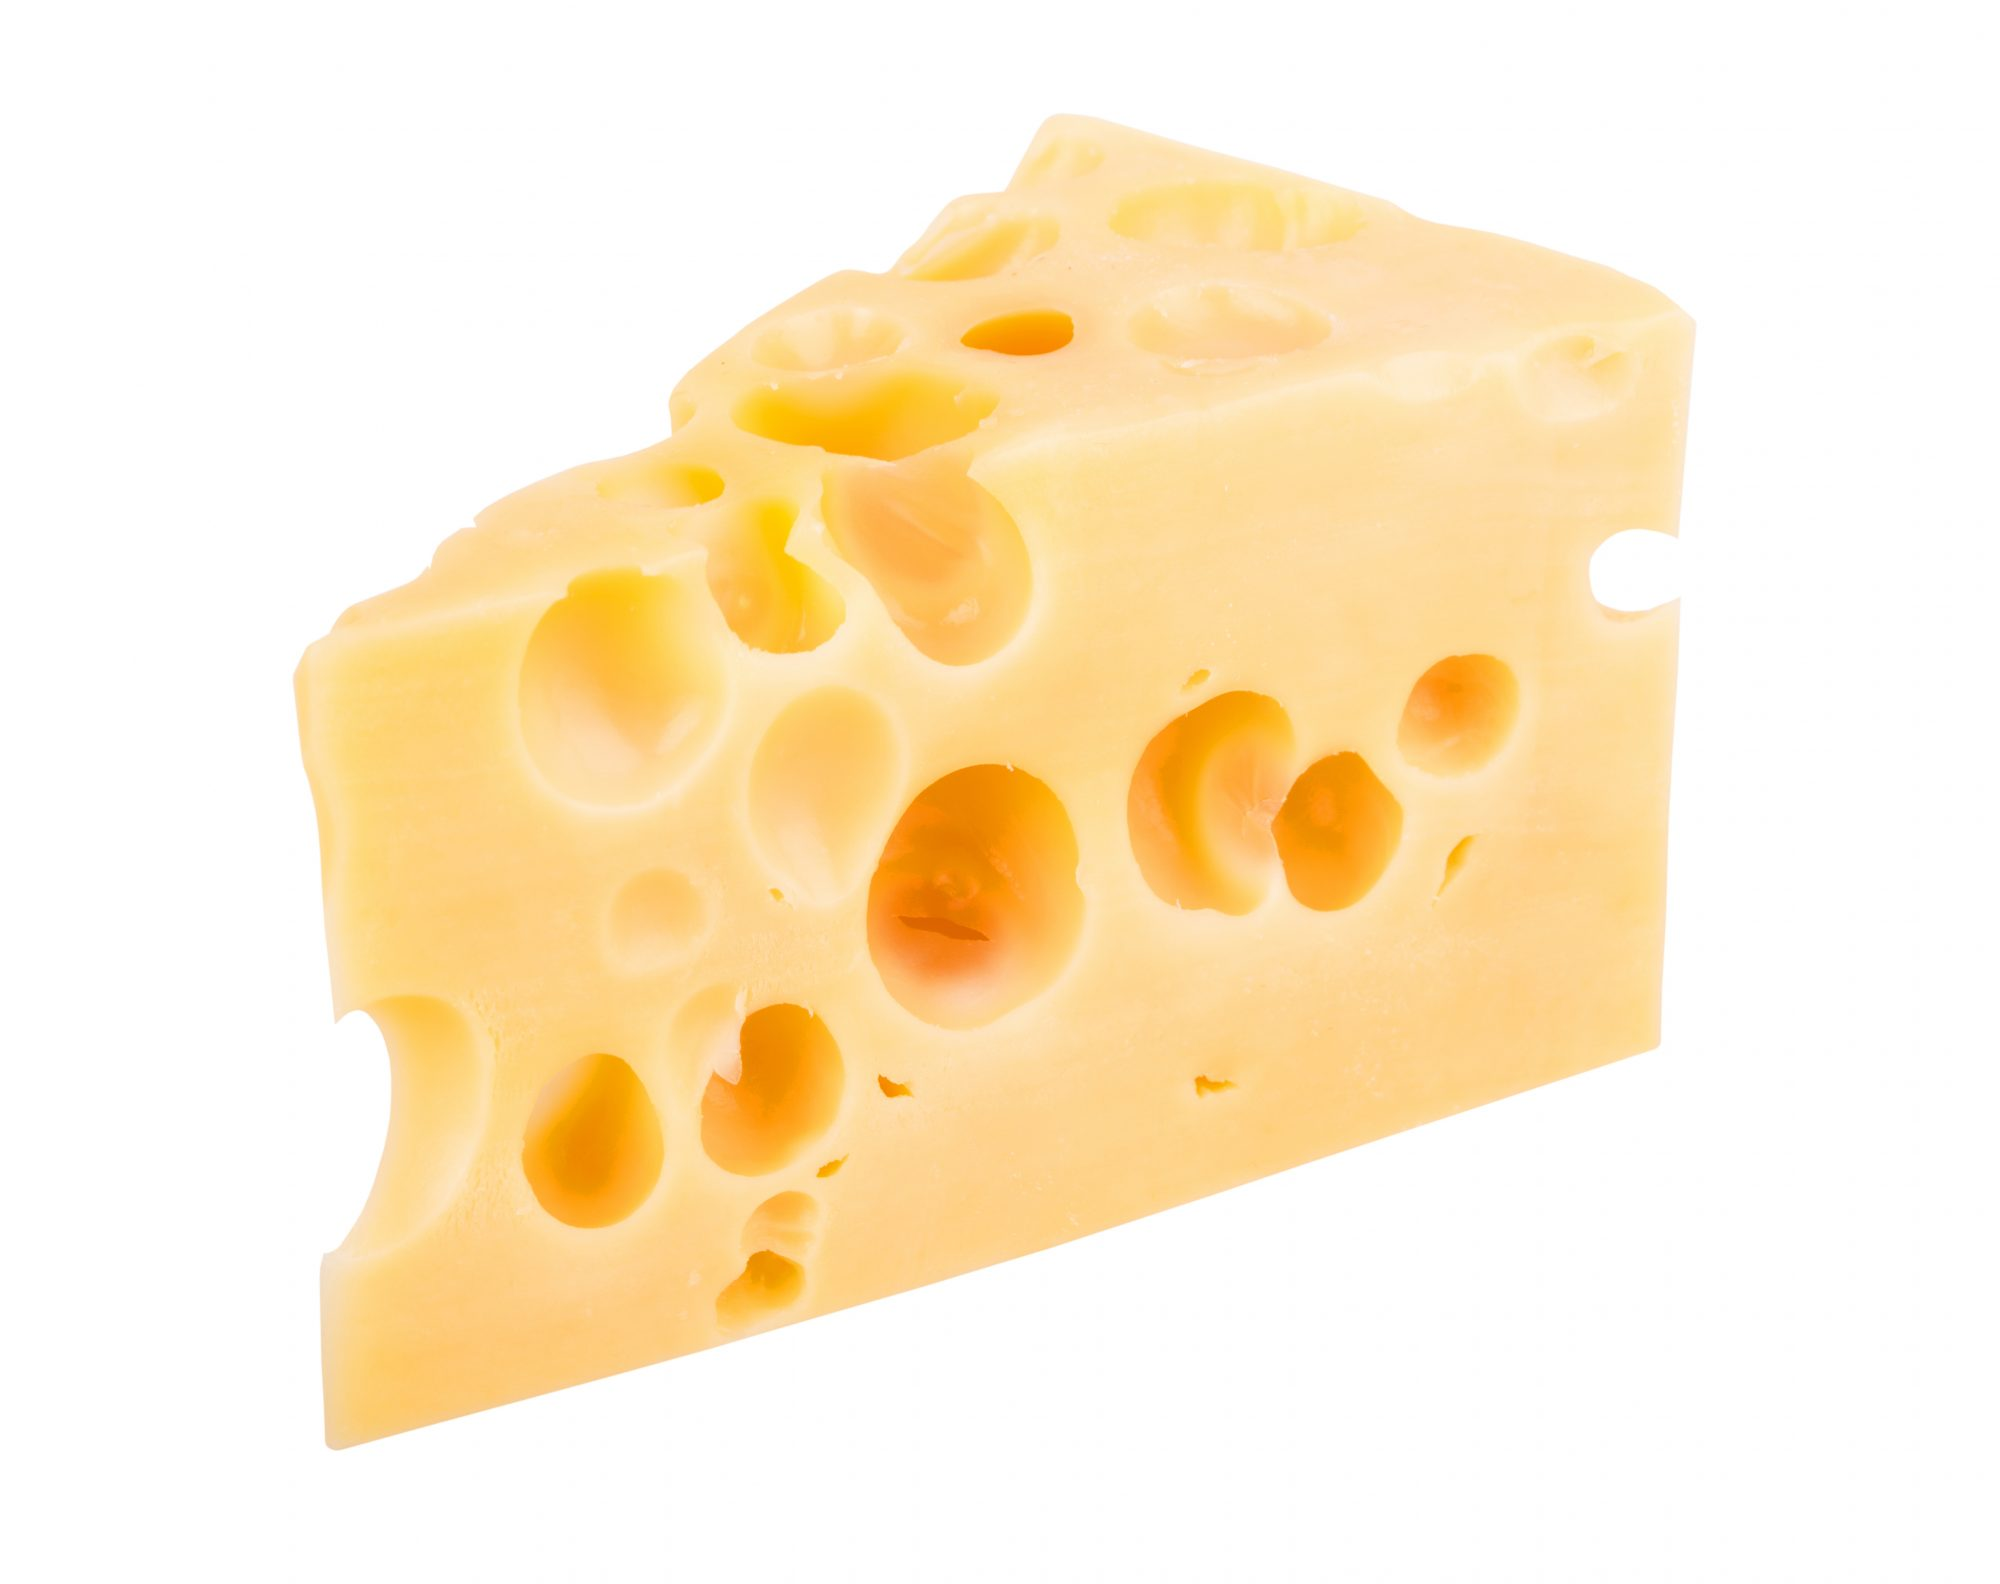 Swiss Cheese, Getty 7/9/19